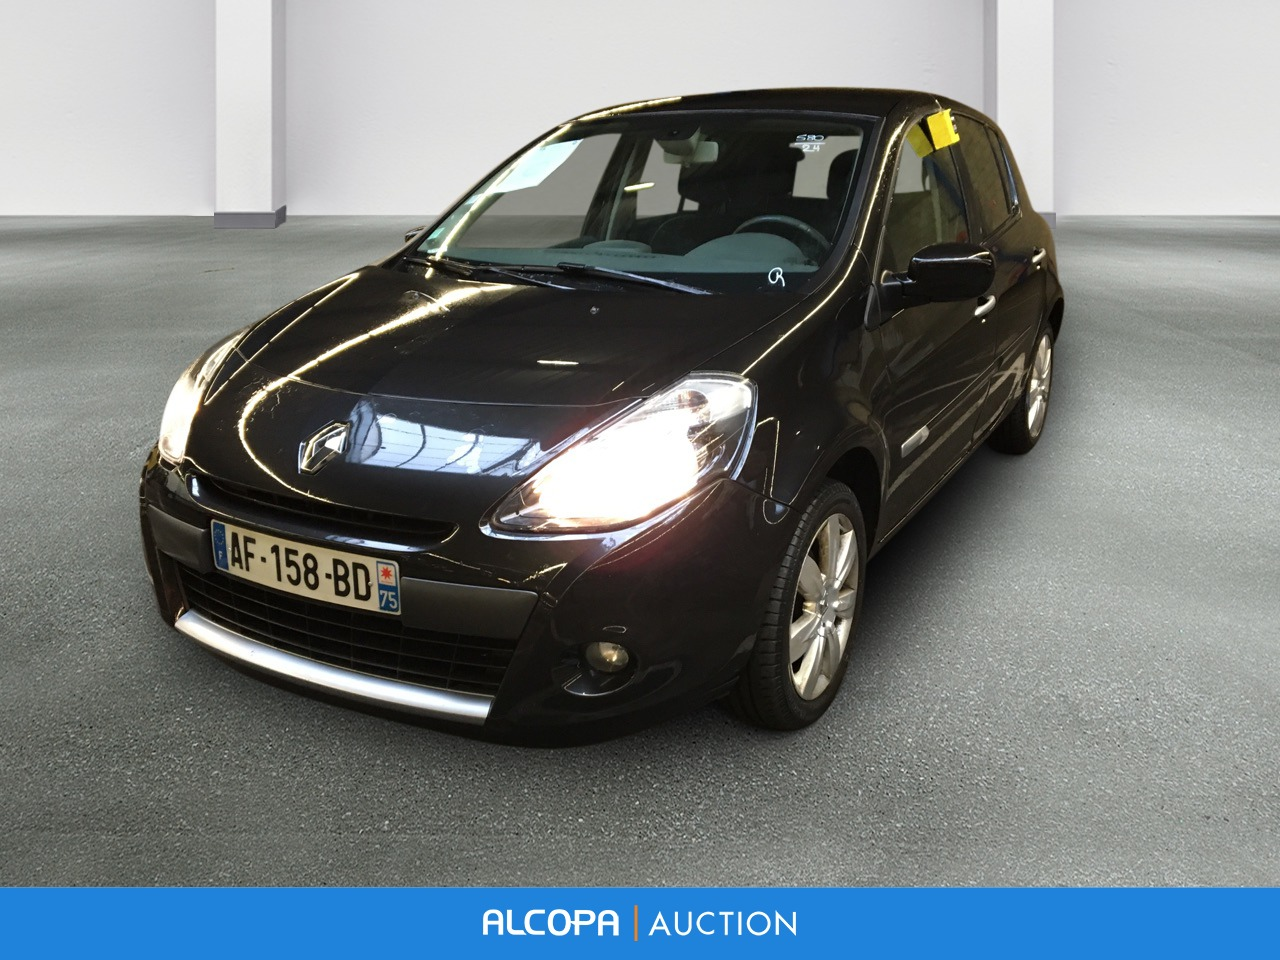 renault clio iii clio iii dci 85 eco2 exception alcopa auction. Black Bedroom Furniture Sets. Home Design Ideas